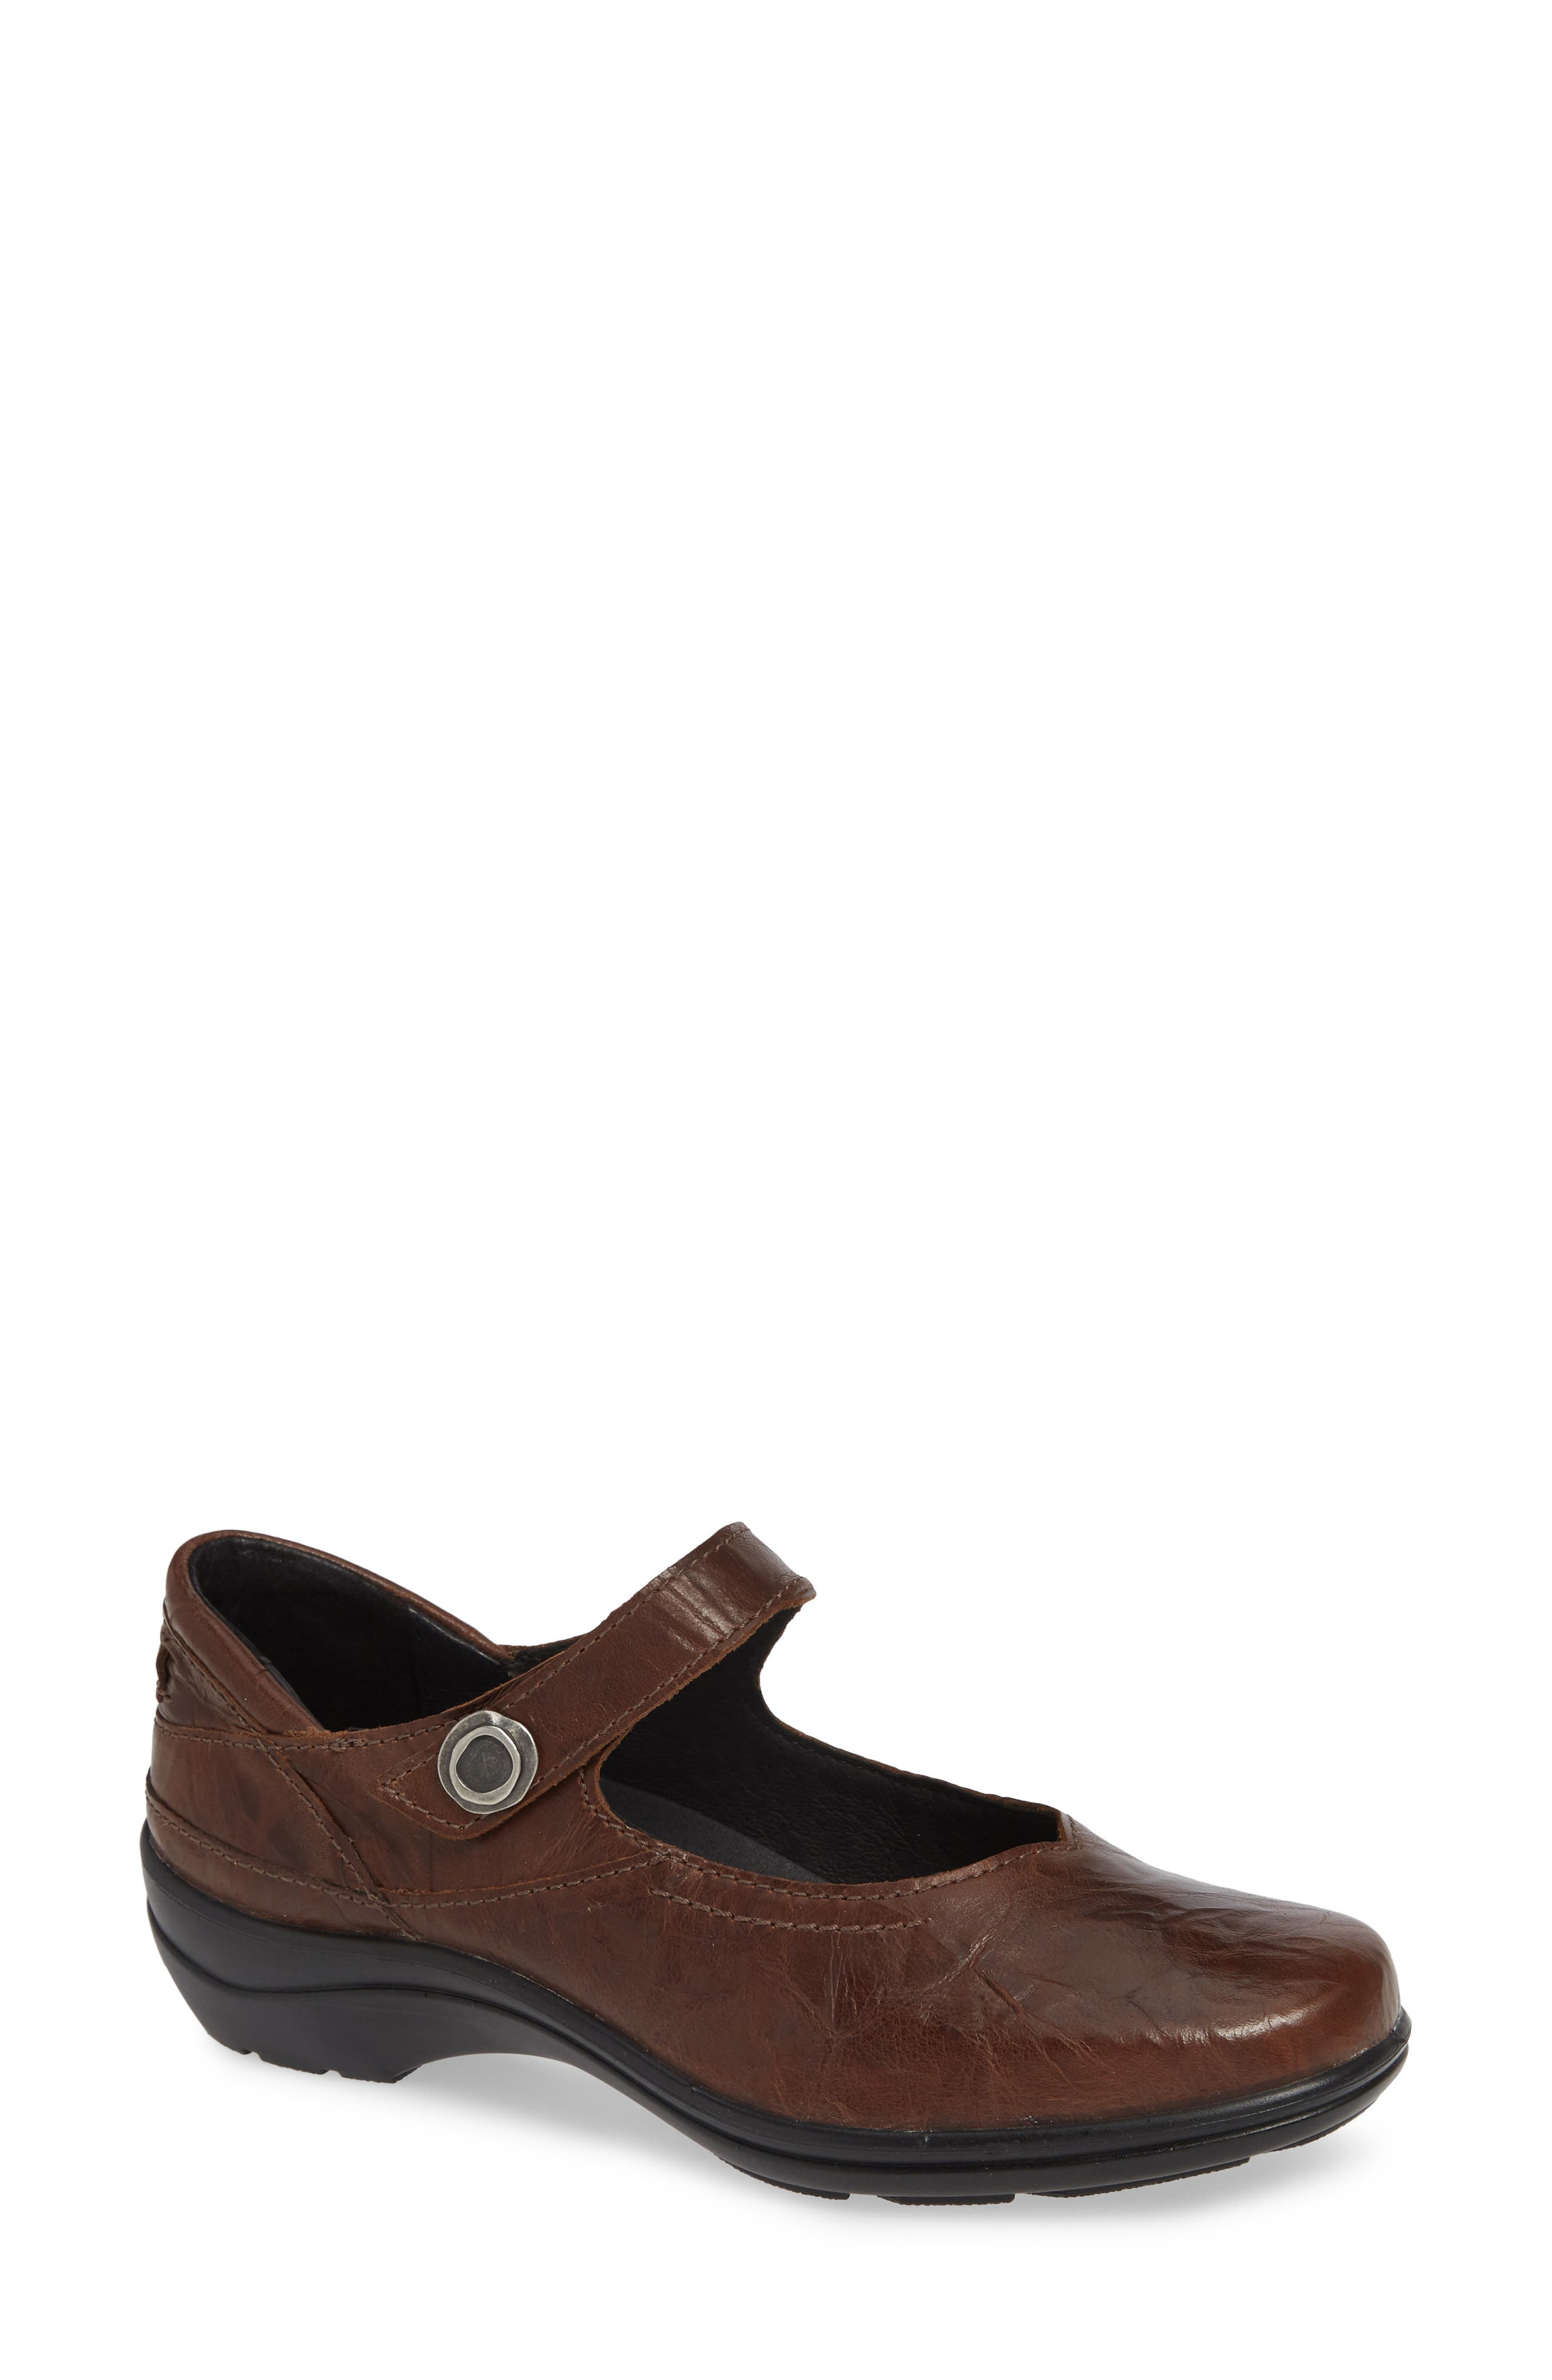 Cassie 50 Mary Jane Flat,                         Main,                         color, BROWN LEATHER